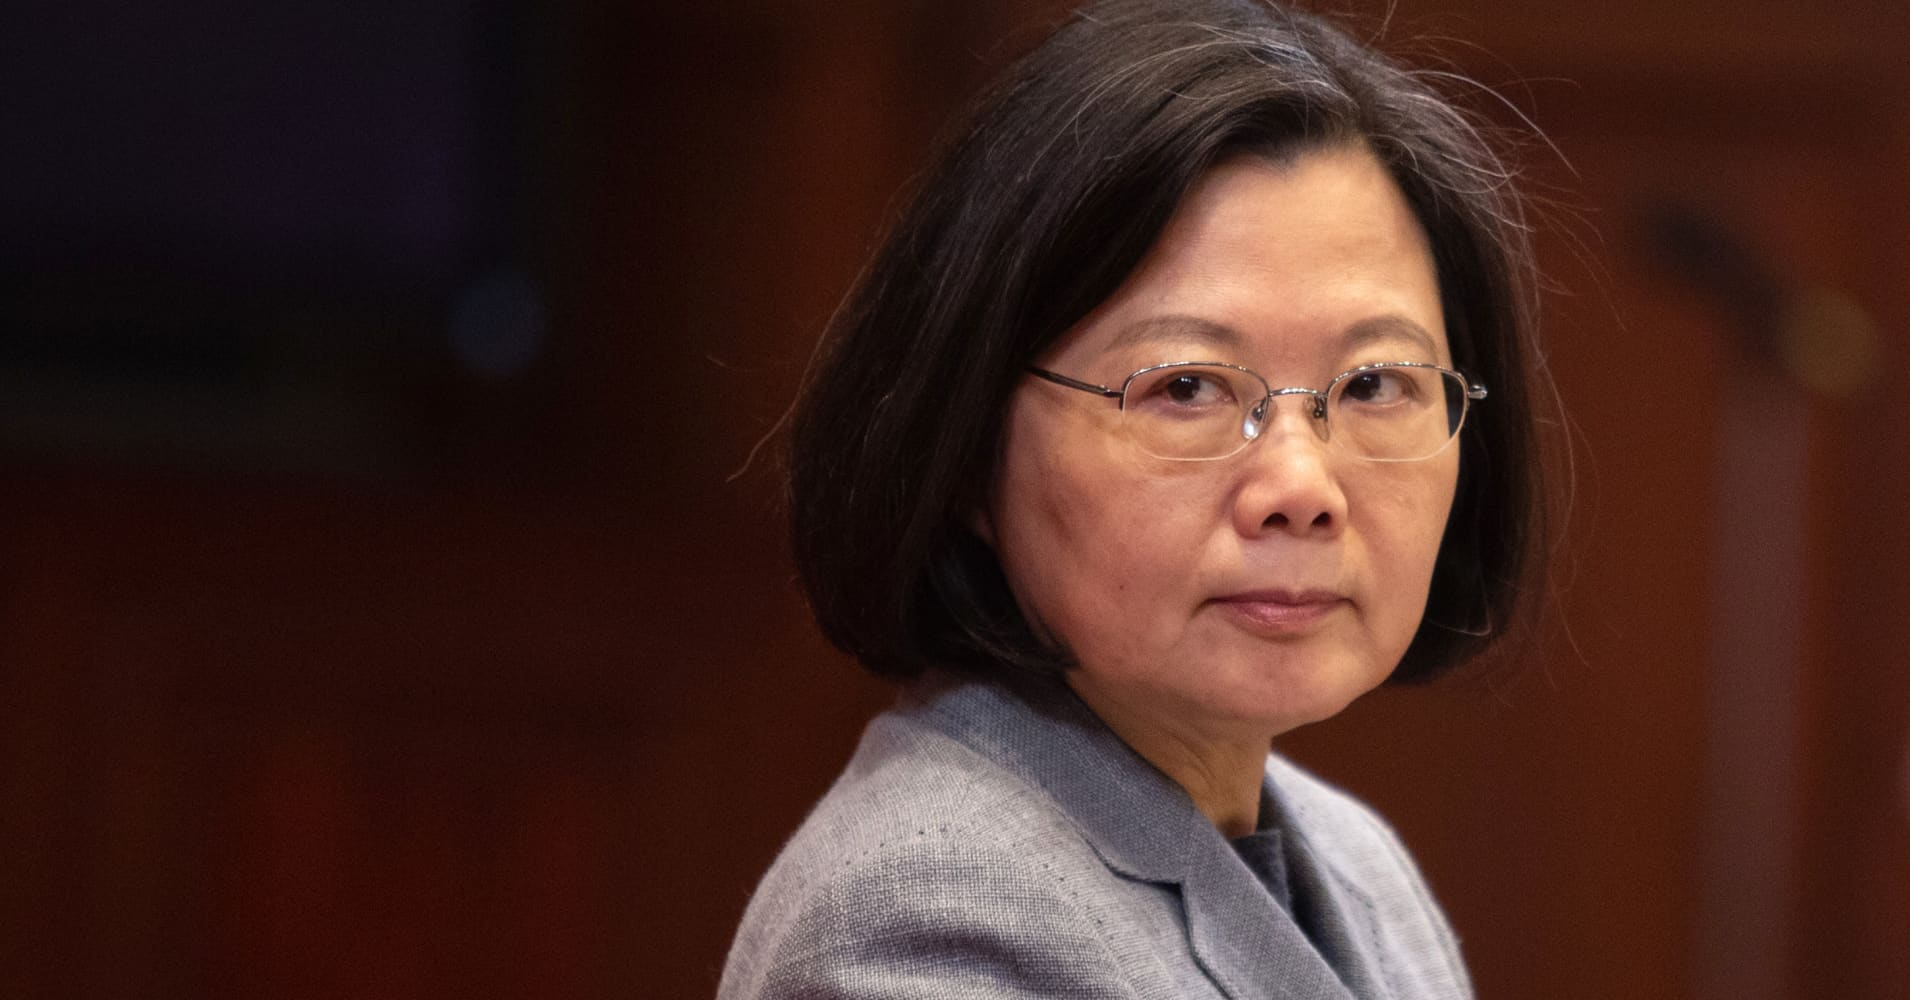 Taiwan's president orders military to 'forcefully expel' future incursions of China warplanes